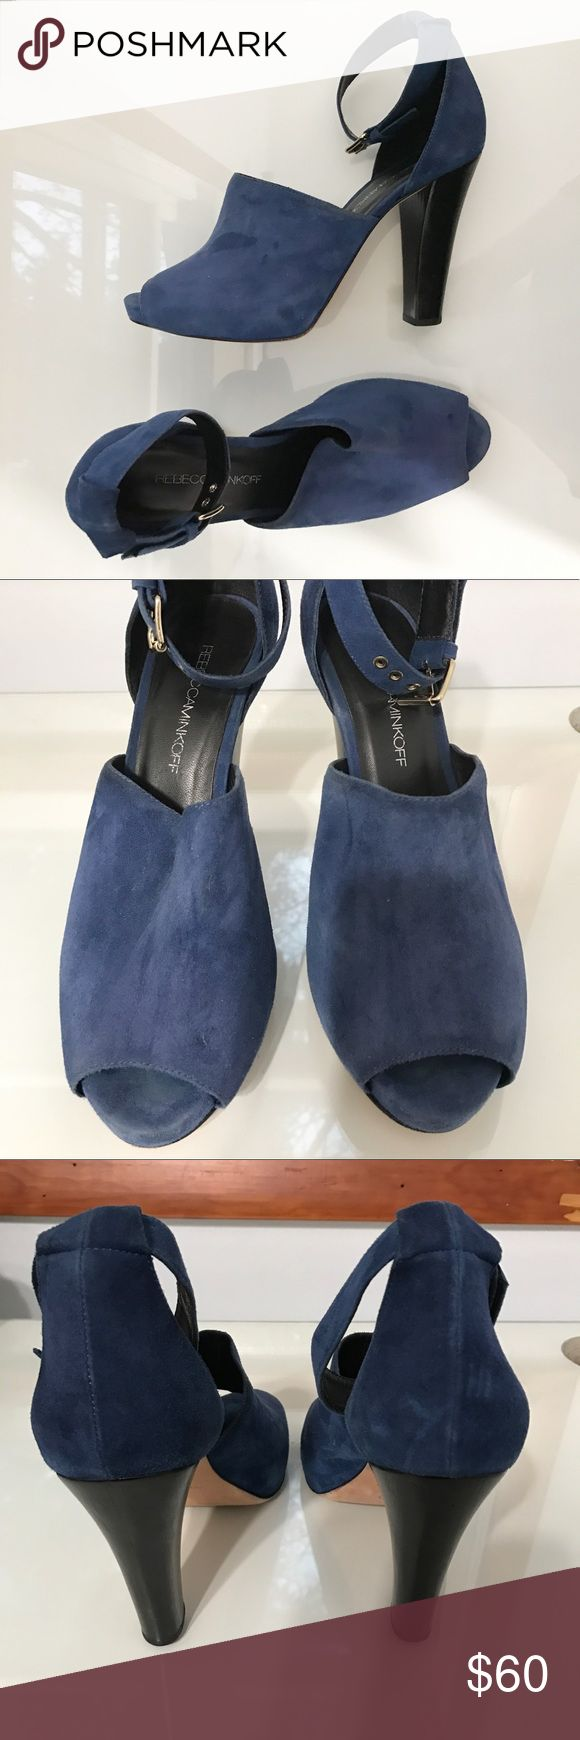 Rebecca Minkoff Blue Suede Heels These fabulous blue heels from Rebecca Minkoff are gorgeous! They're in good condition. They've only been worn a handful of times. Feel free to ask any questions or make a reasonable offer! Rebecca Minkoff Shoes Platforms